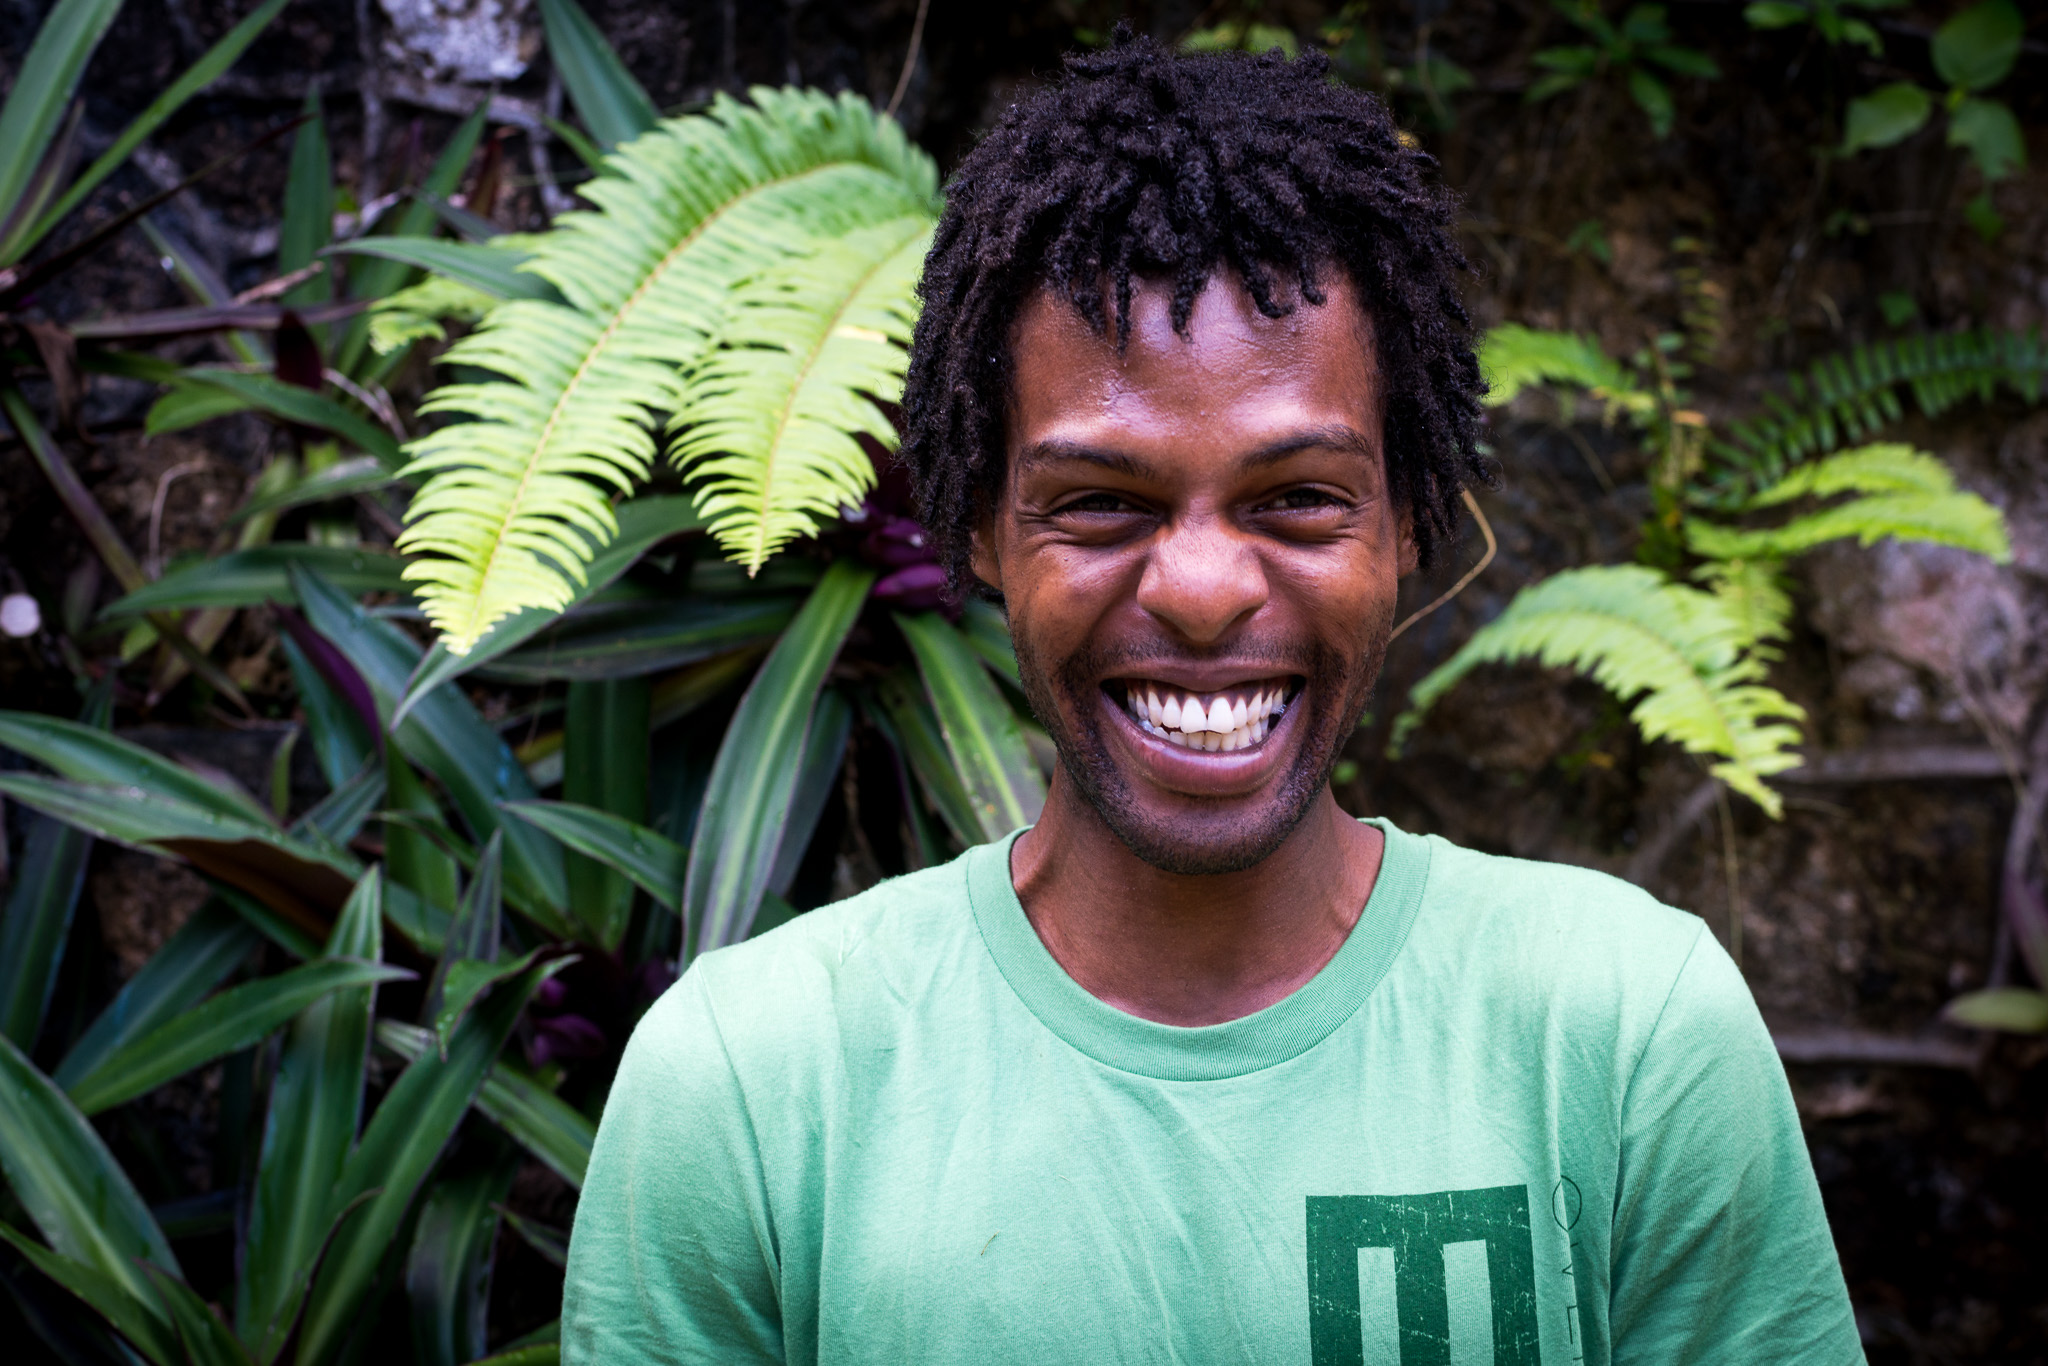 Roshaun Lawrence is Singletrack's lead guide. A lover of anything involving two wheels, nobody on the island has more fun while riding than Roshaun. He's has a wealth of knowledge about Jamaica and will make sure you enjoy your ride!